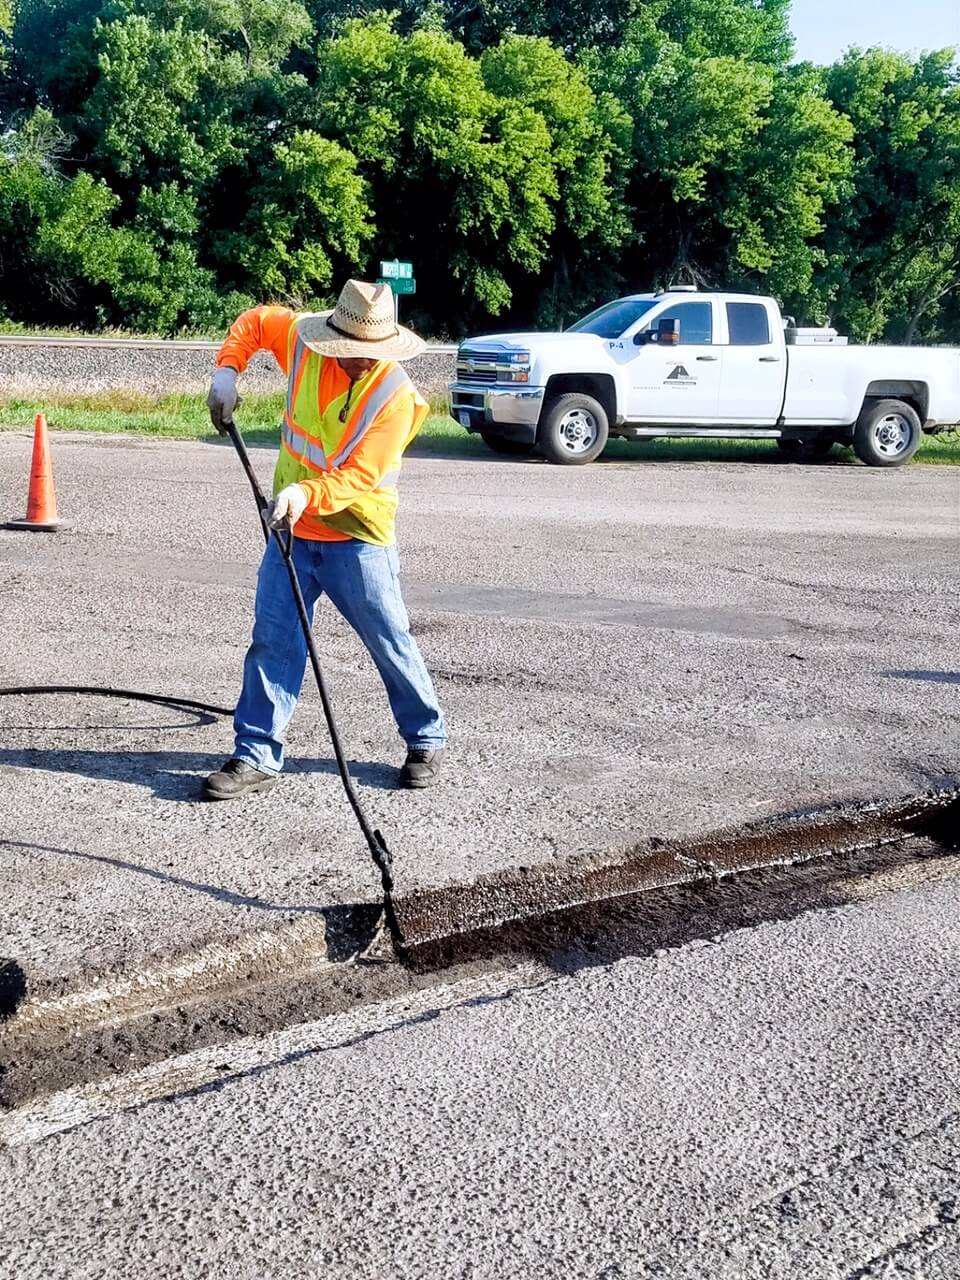 A midwest coatings worker uses a long tool to spread asphalt across a crac.